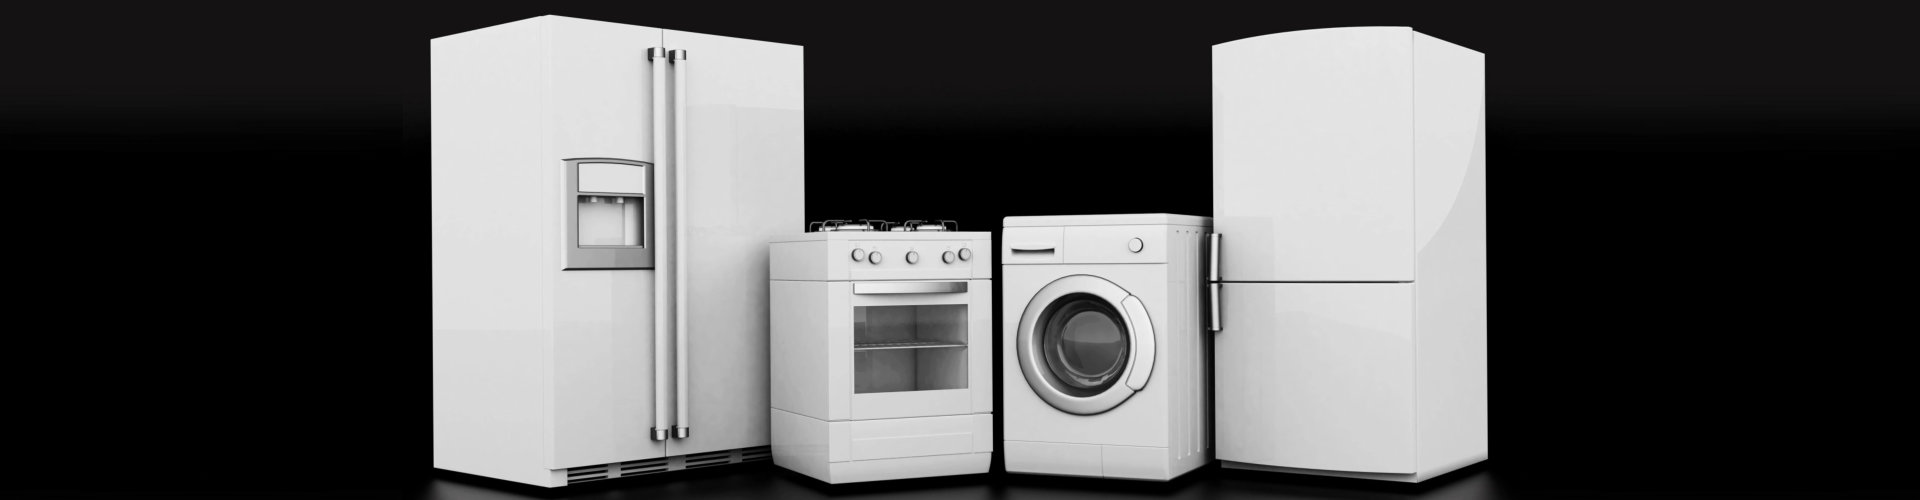 refrigerators and wash dryers